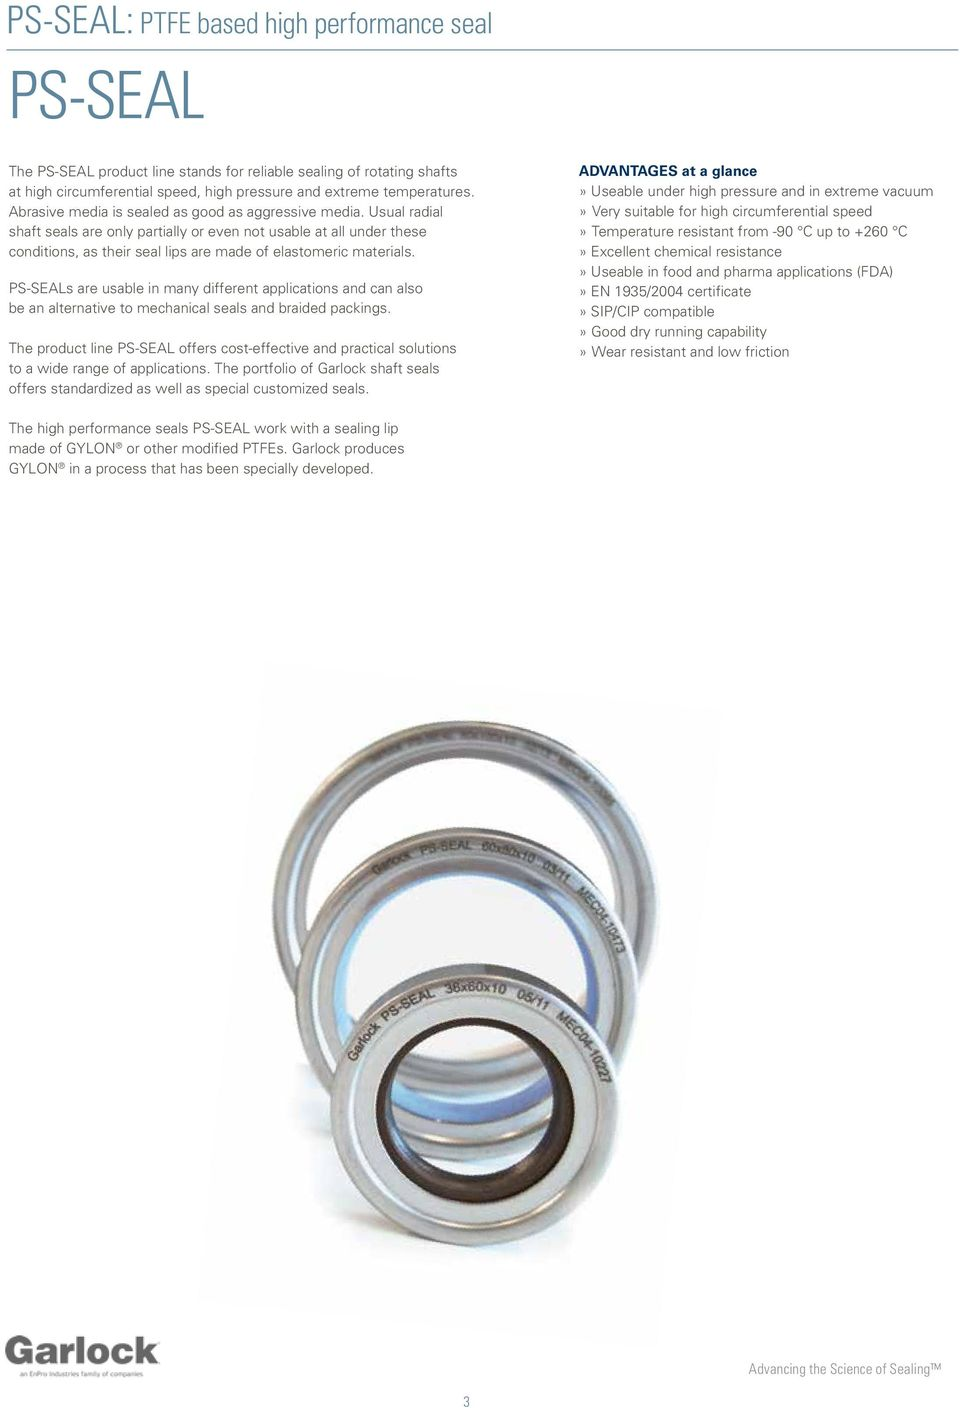 Usual radial shaft seals are only partially or even not usable at all under these conditions, as their seal lips are made of elastomeric materials.